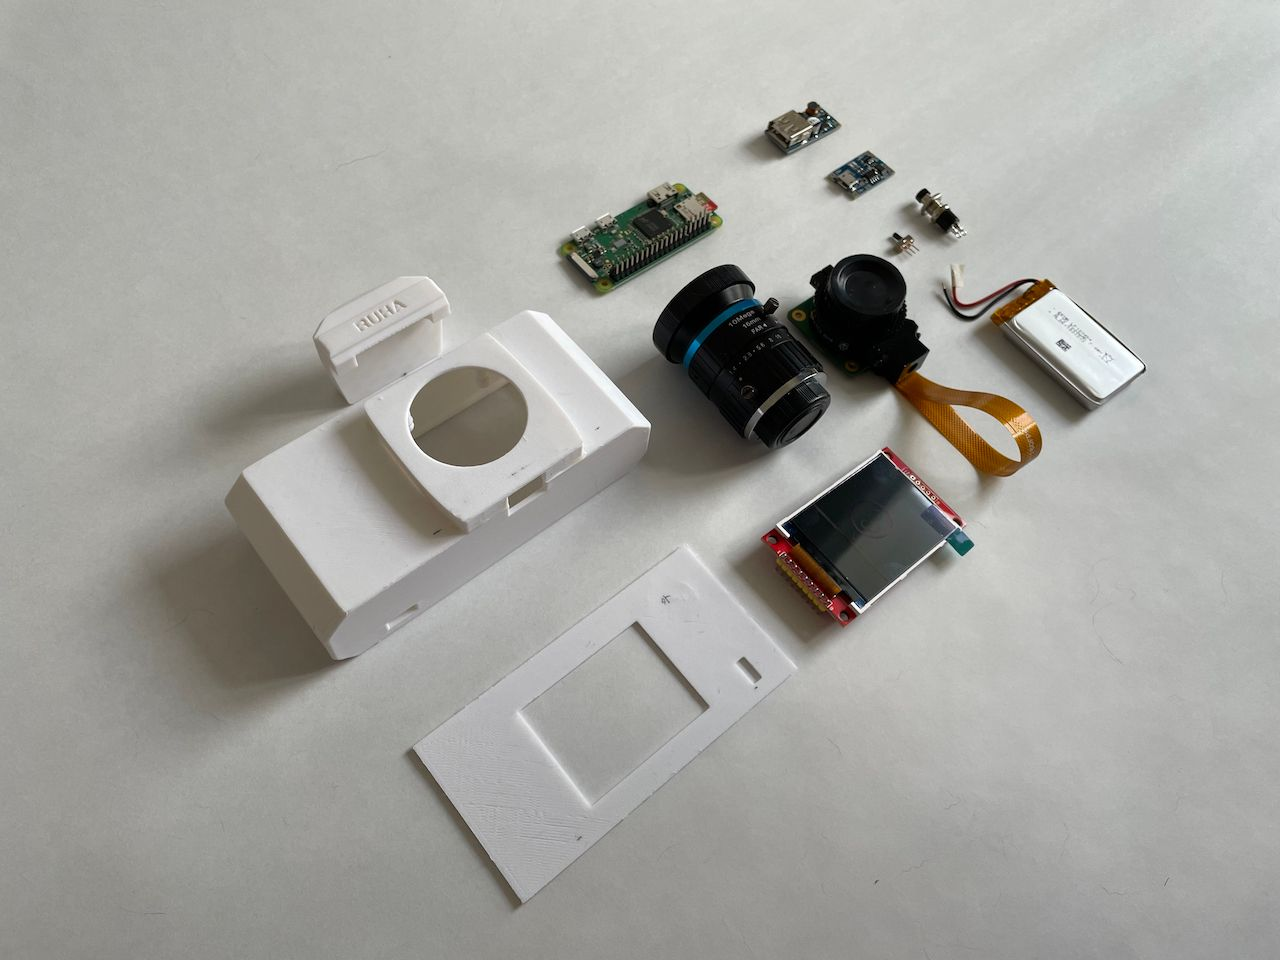 The RUHAcam is an open-source, 3D-printed Linux camera based on Raspberry Pi